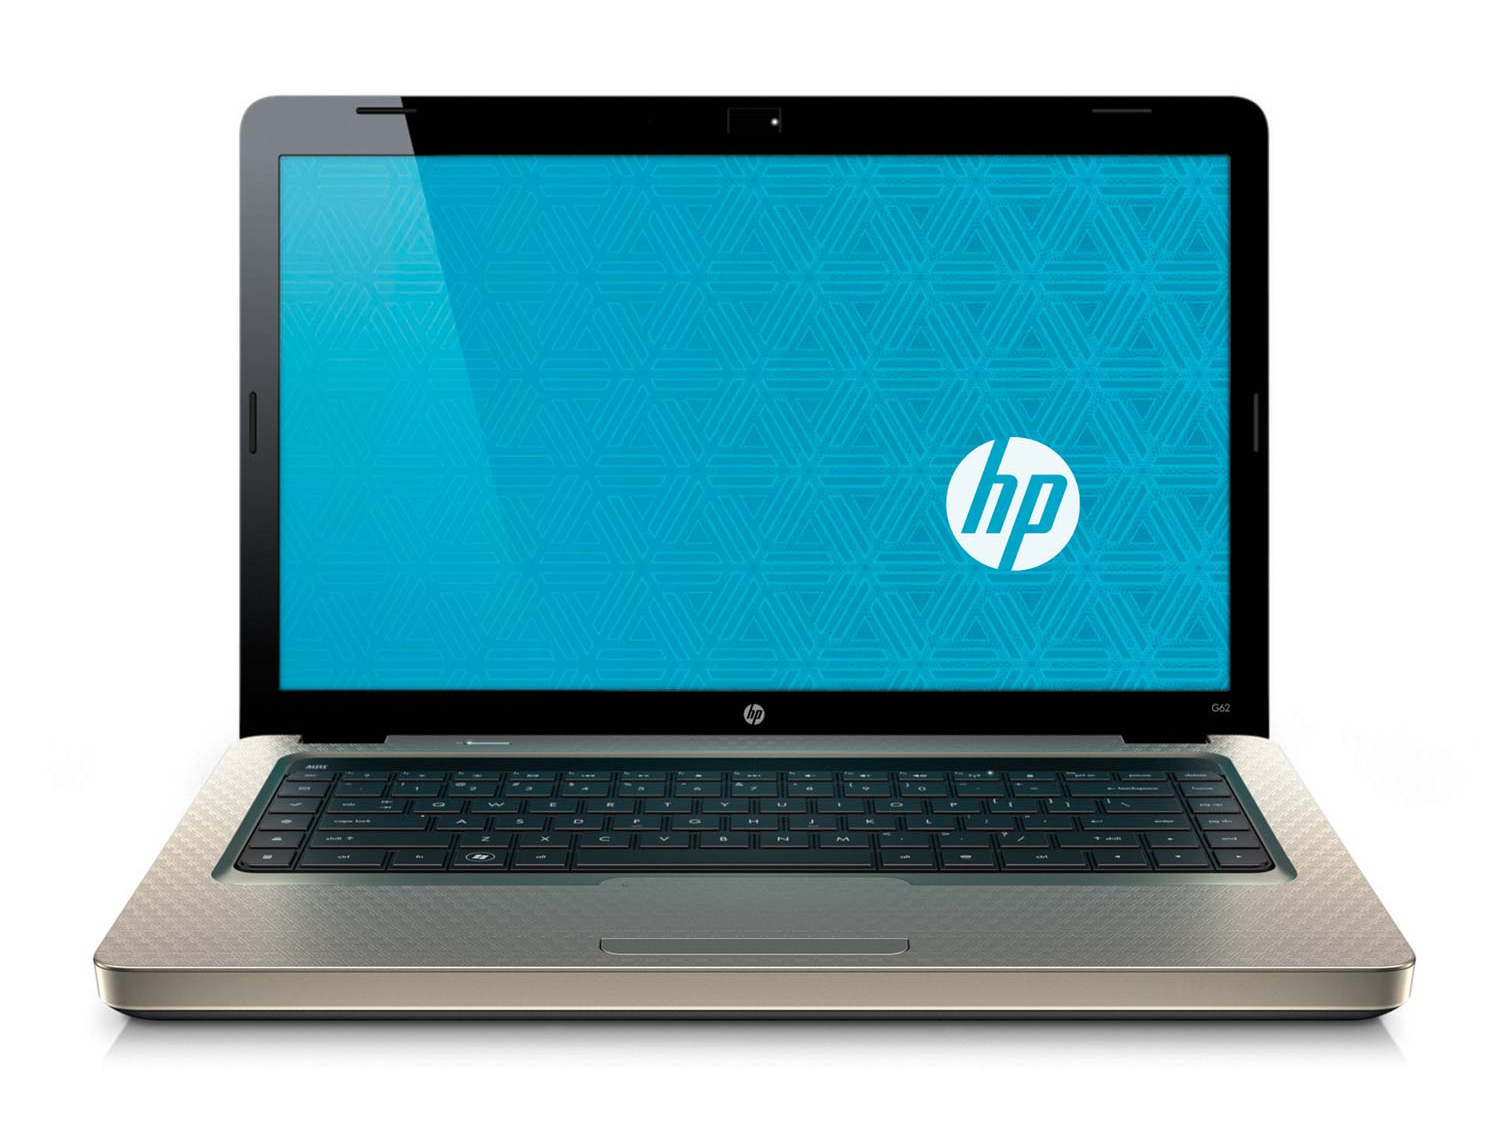 hp printer service center in adambakkam, hp laptop service center in adambakkam